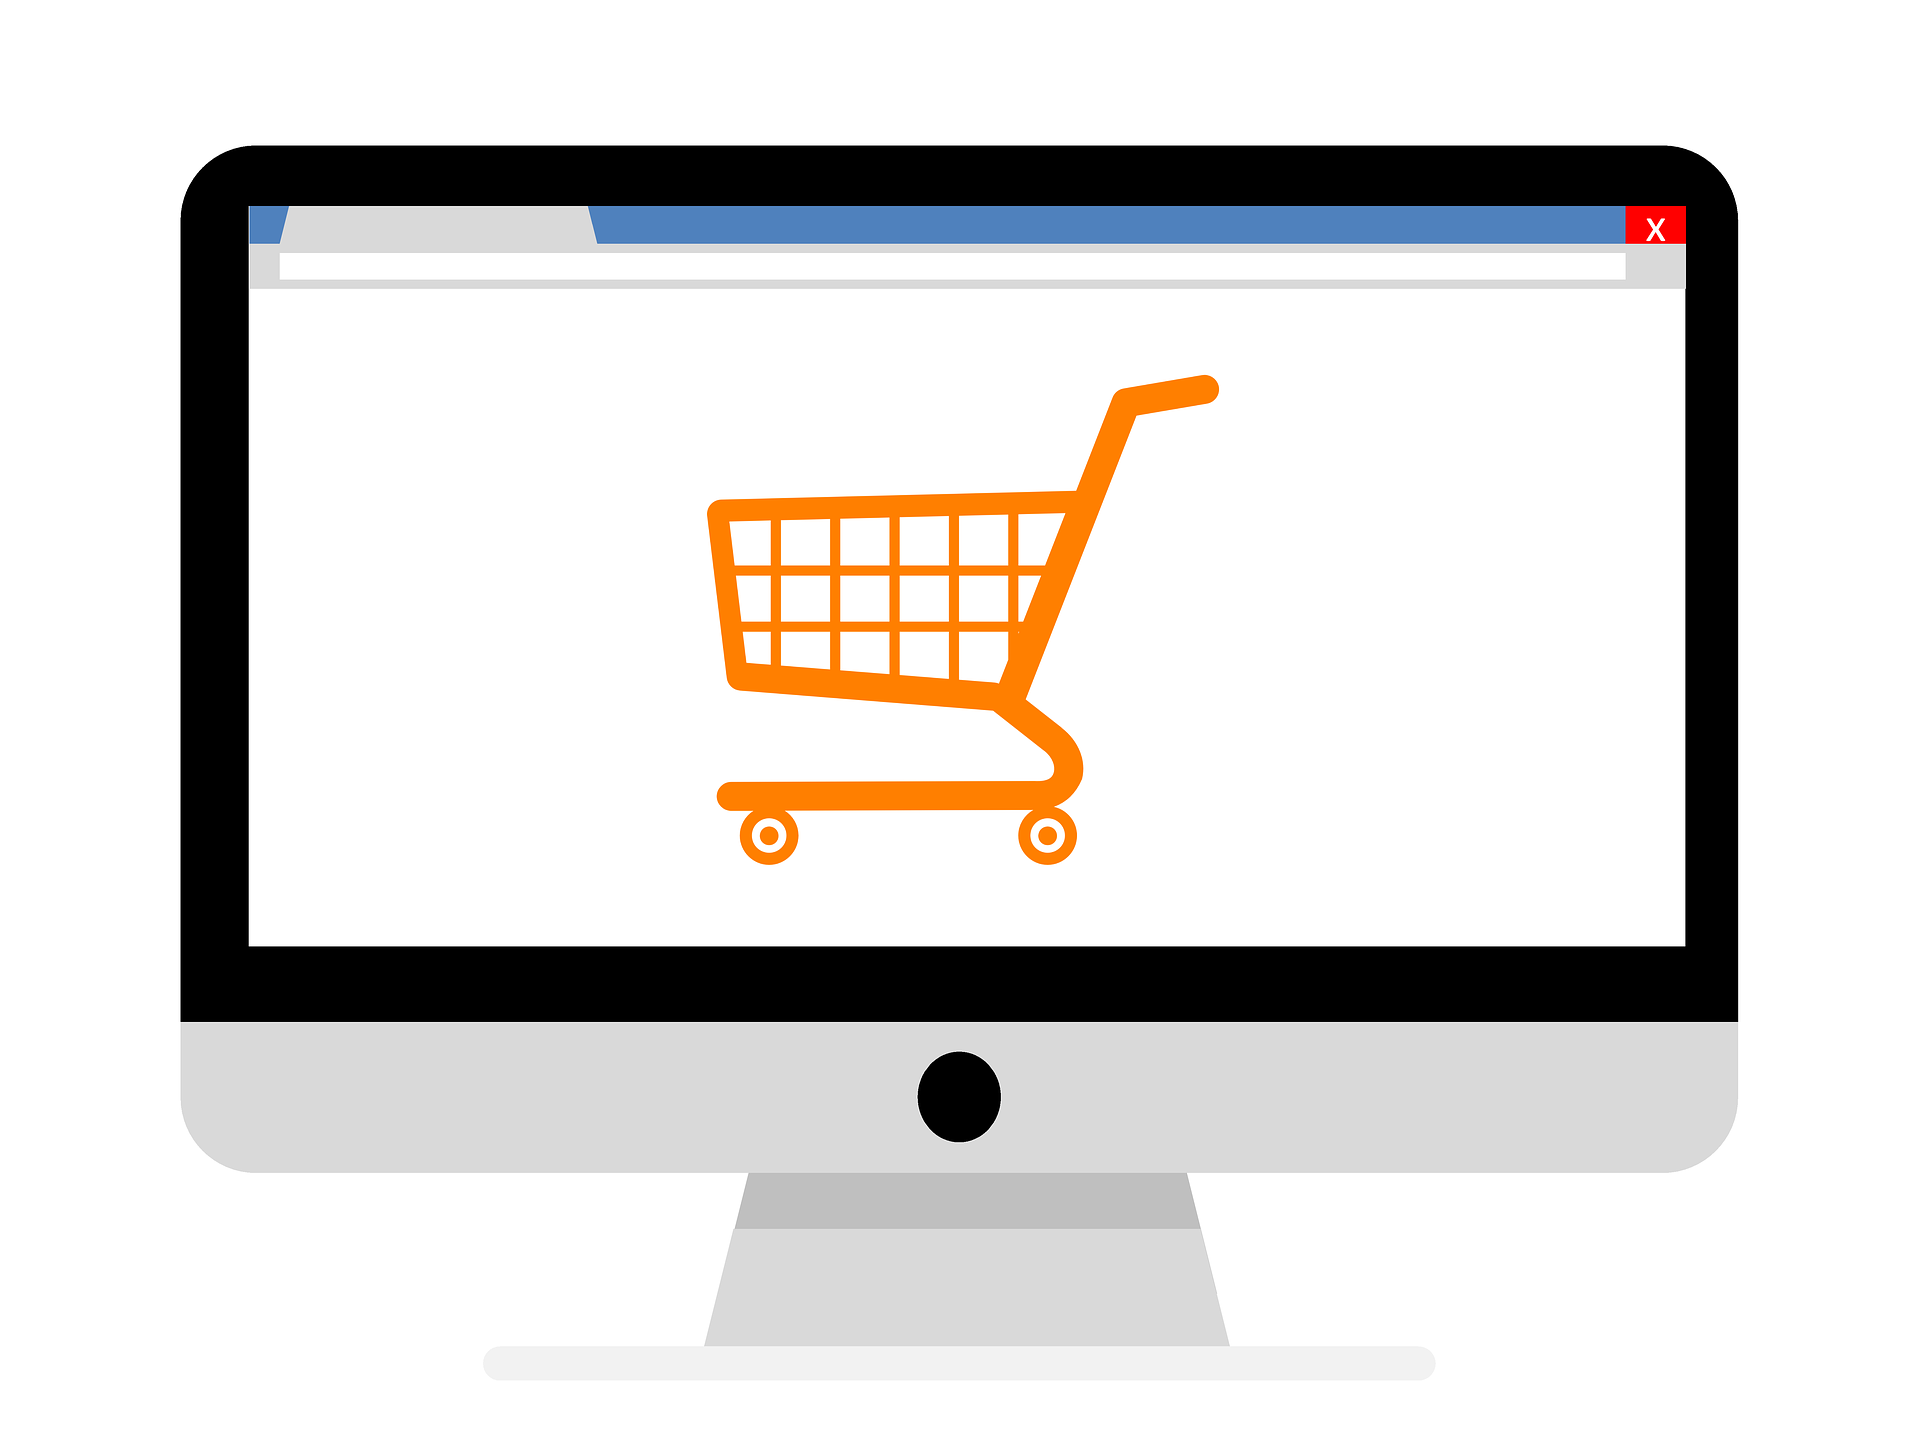 5 Simple Steps to Launching a Successful Ecommerce Business